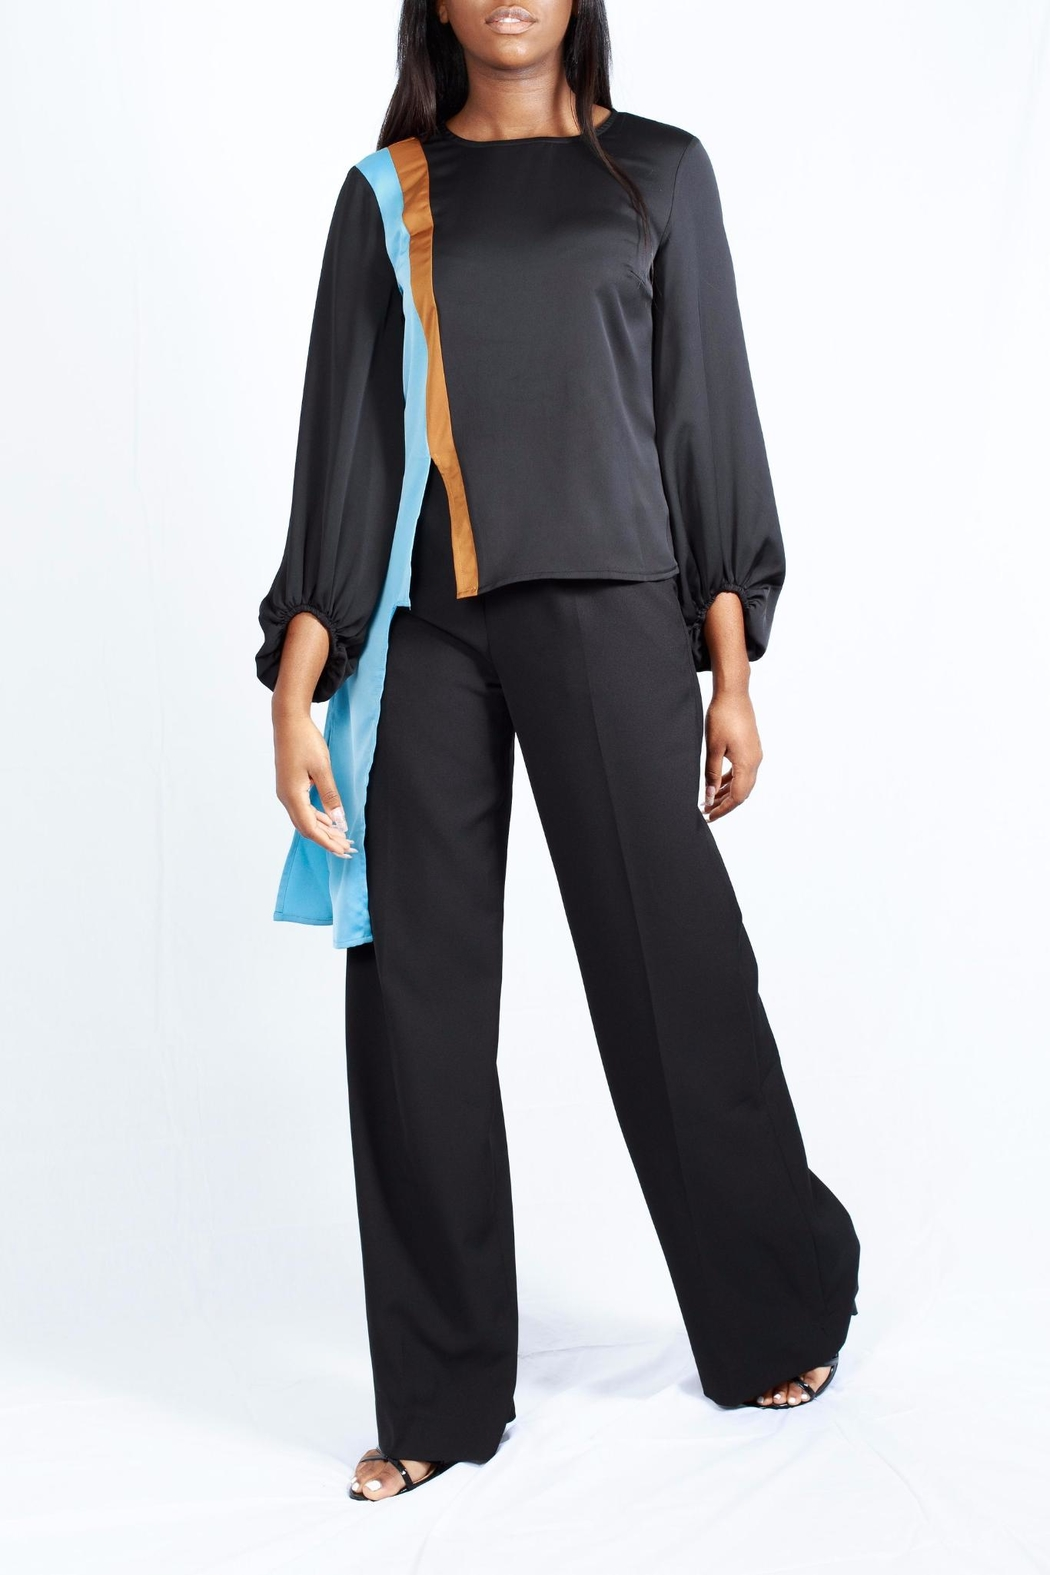 MODChic Couture Colorblock Striped Blouse - Front Full Image